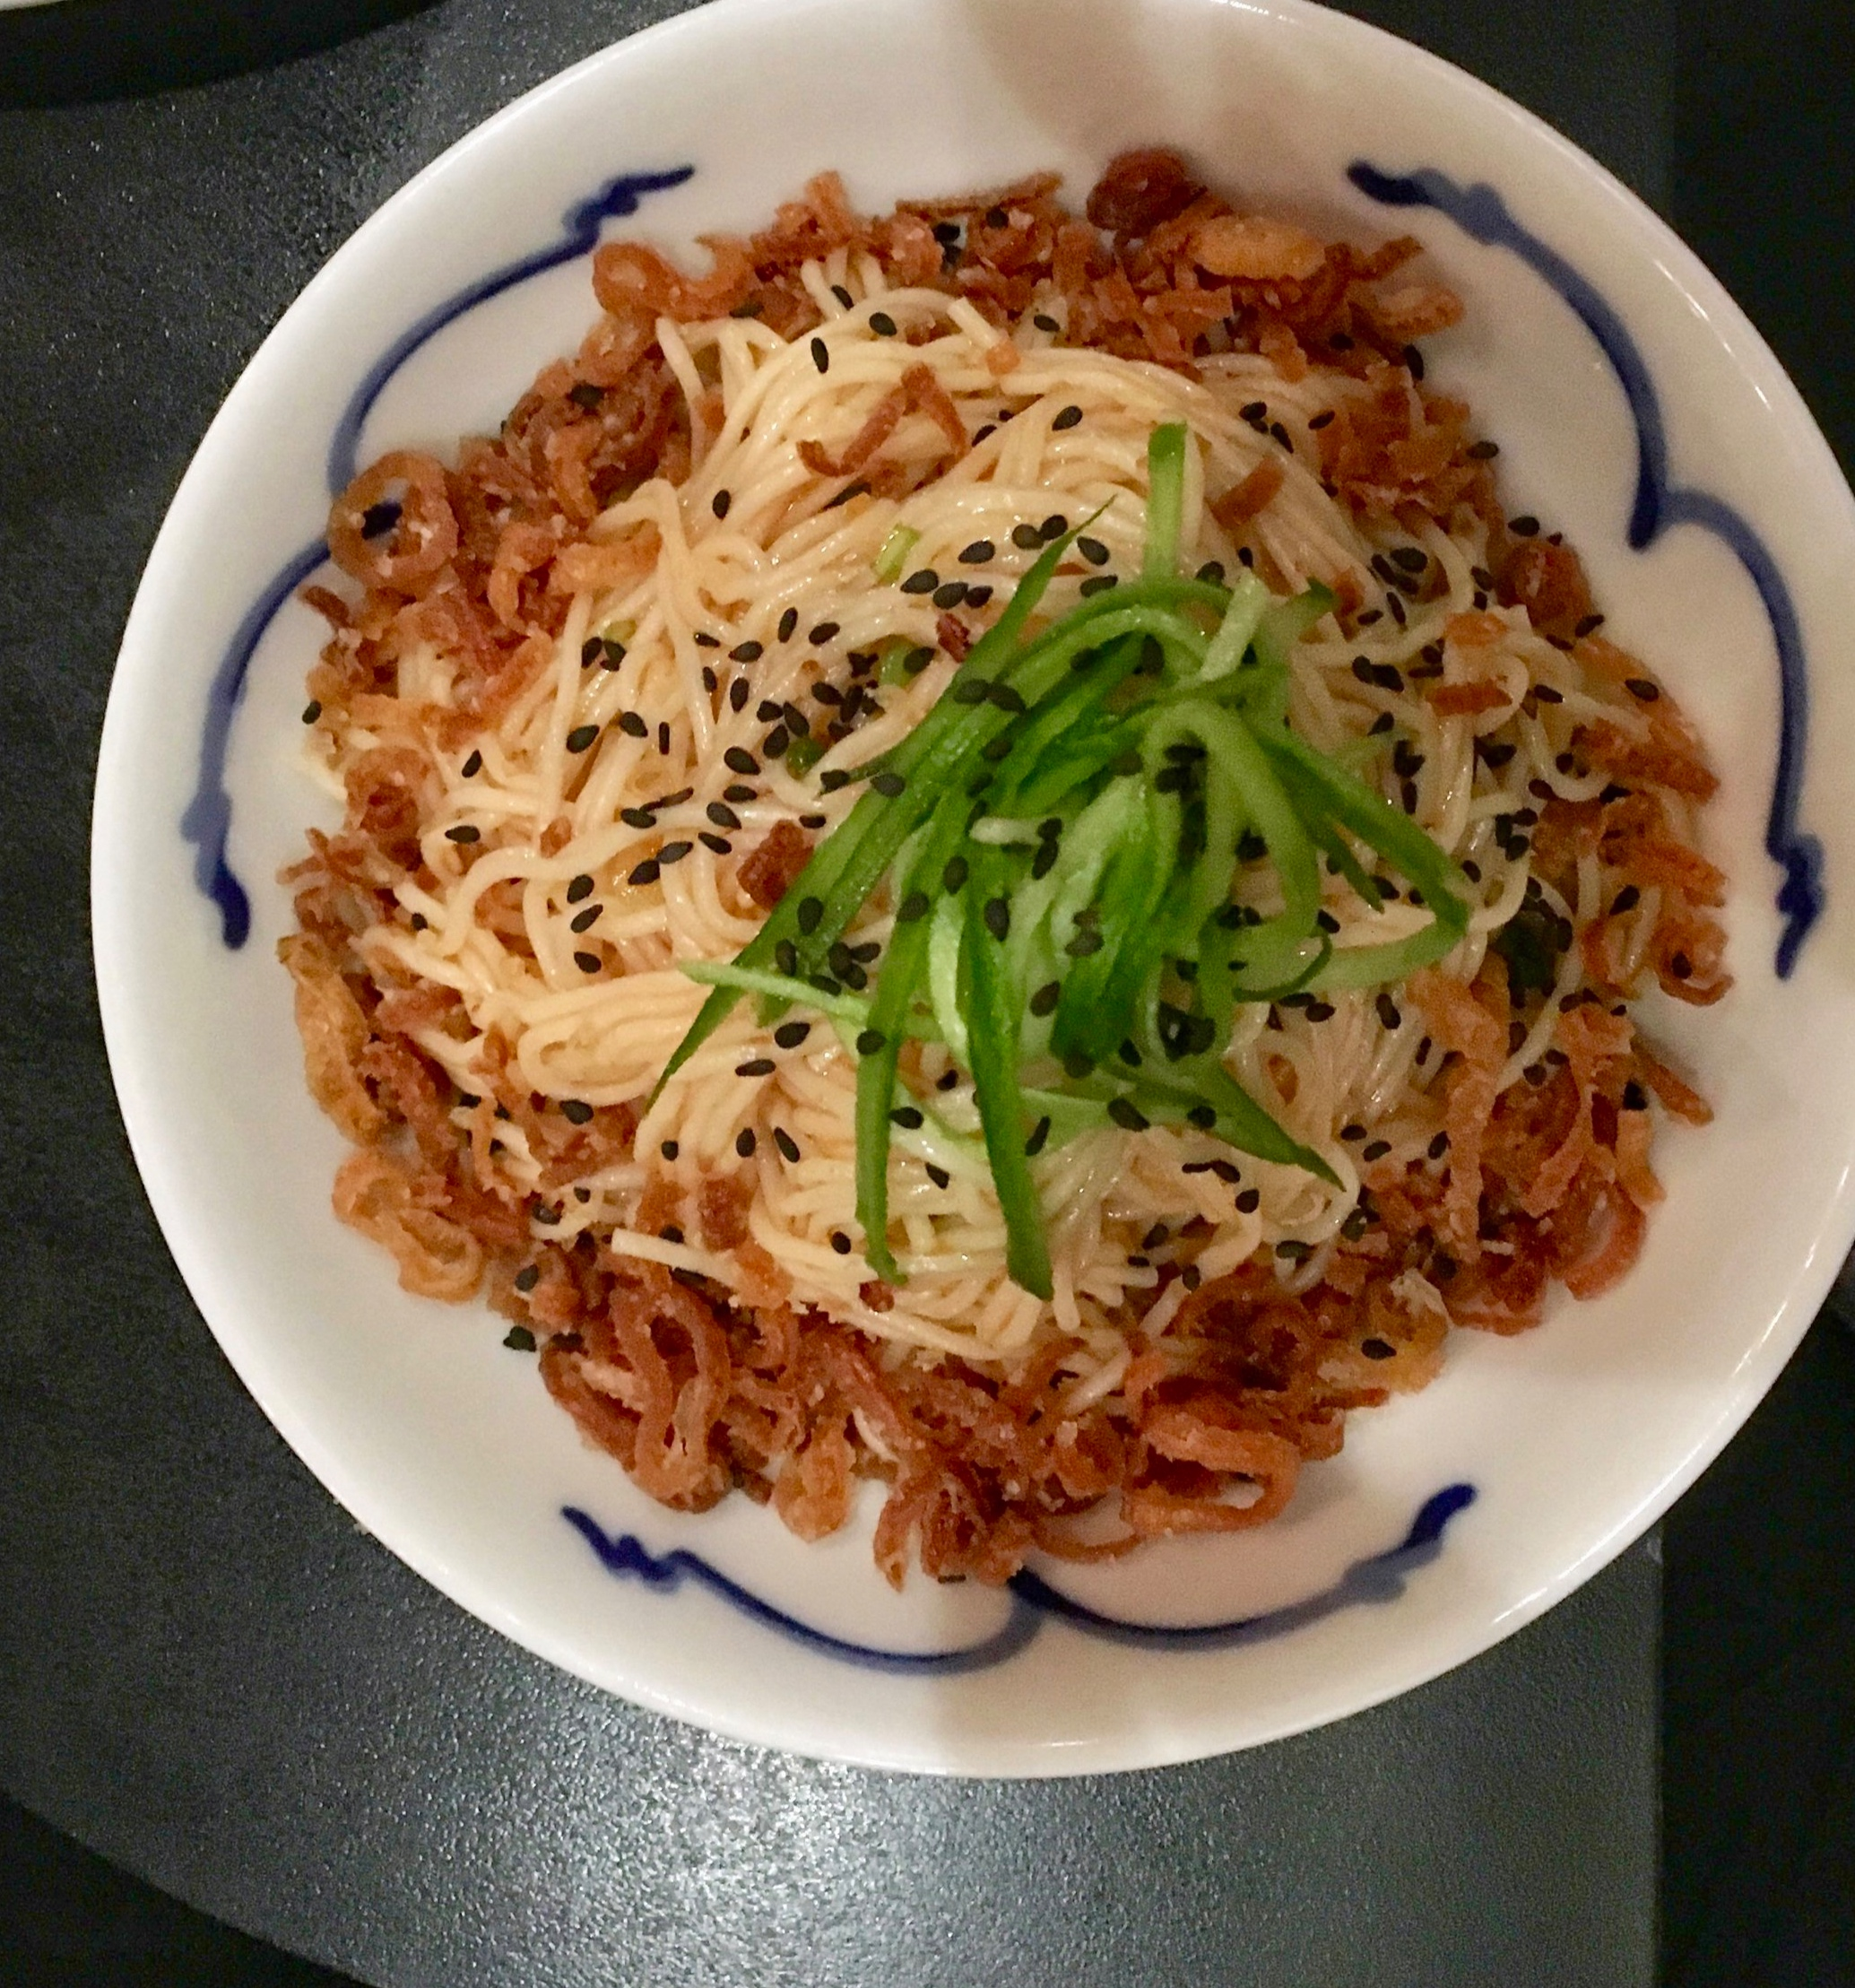 Somen noodles with fried shallots